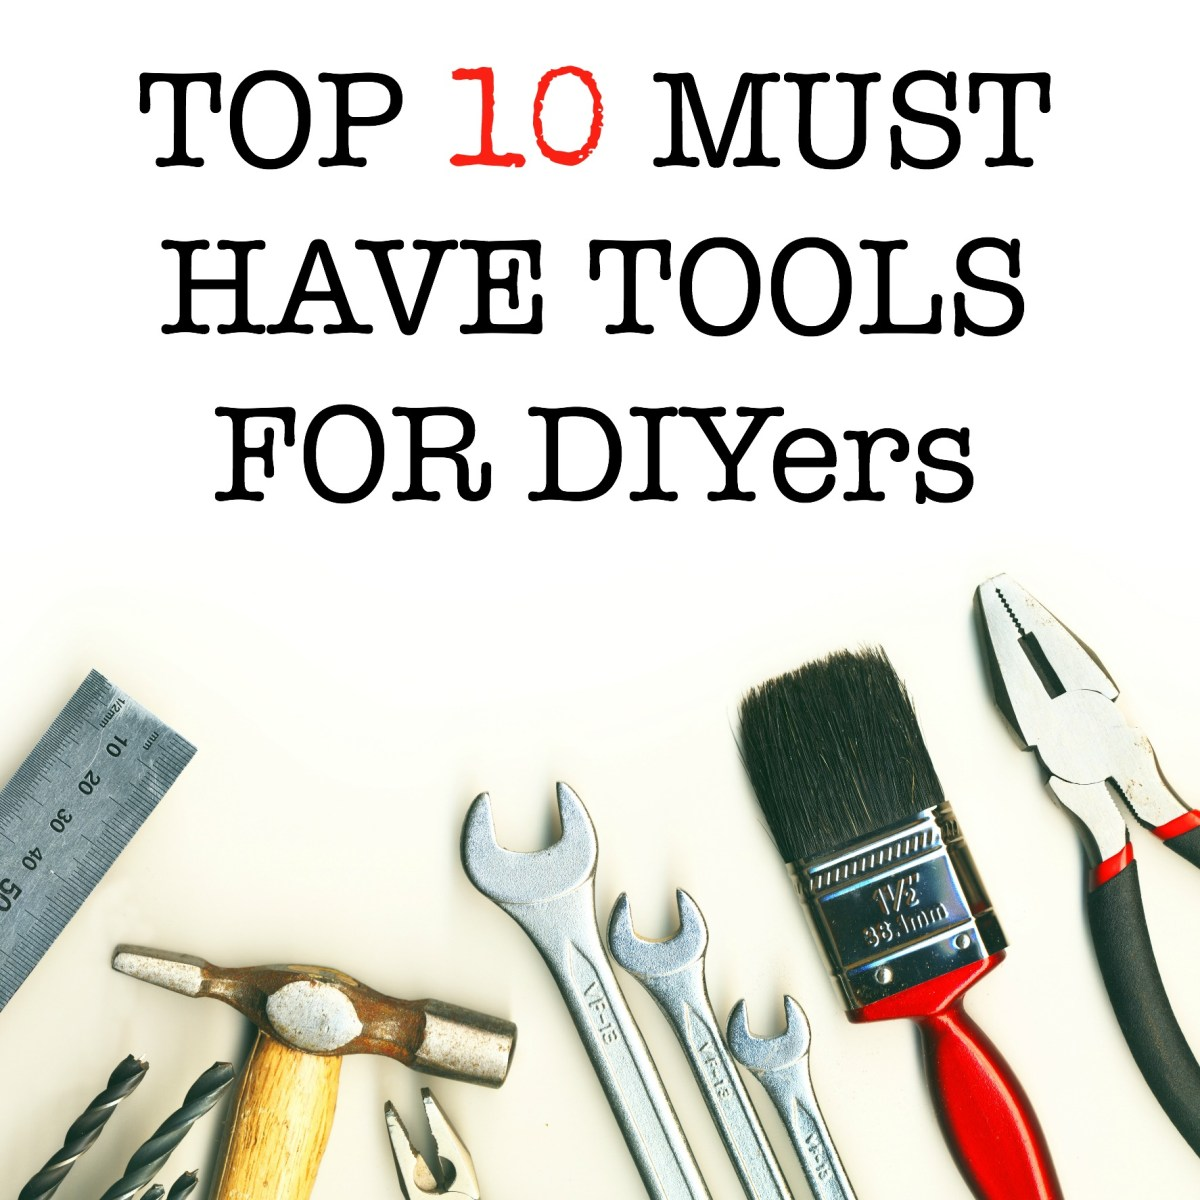 TOP 10 MUST HAVE TOOLS FOR DIYers